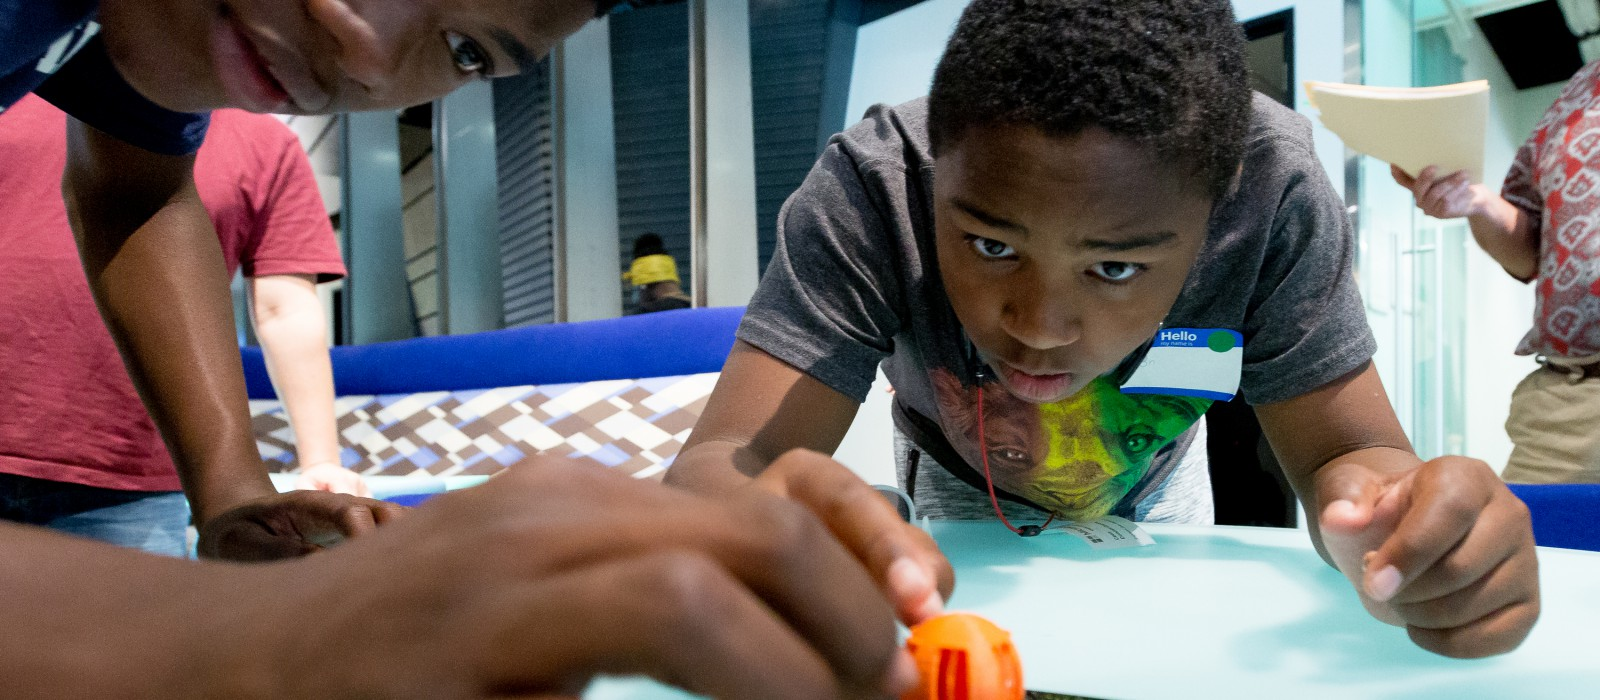 iurban teen is a stem arts education program that iurban teen is a stem arts education program that brings together underrepresented teens and young adults for career exploration and mentoring